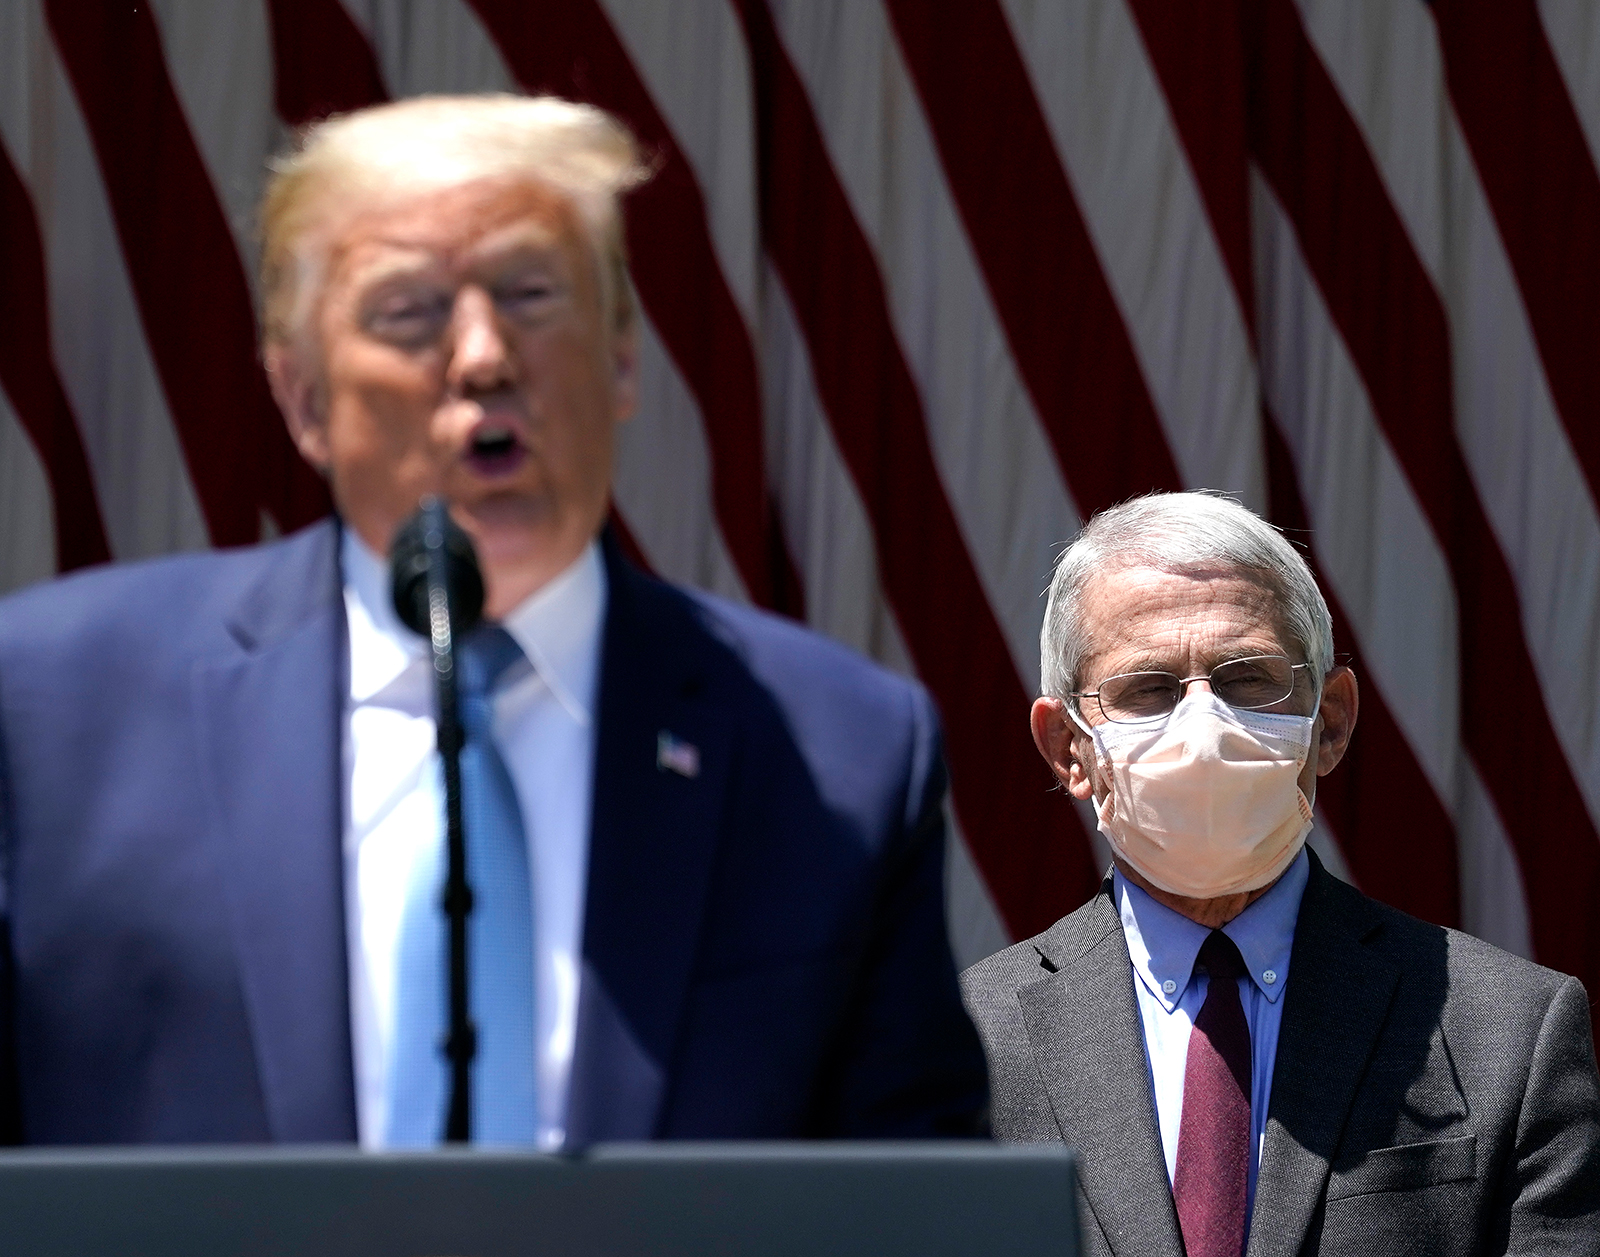 Dr. Anthony Fauci, director of the National Institute of Allergy and Infectious Diseases, stands behind President Donald Trump in the Rose Garden of the White House in Washington, on May 15.